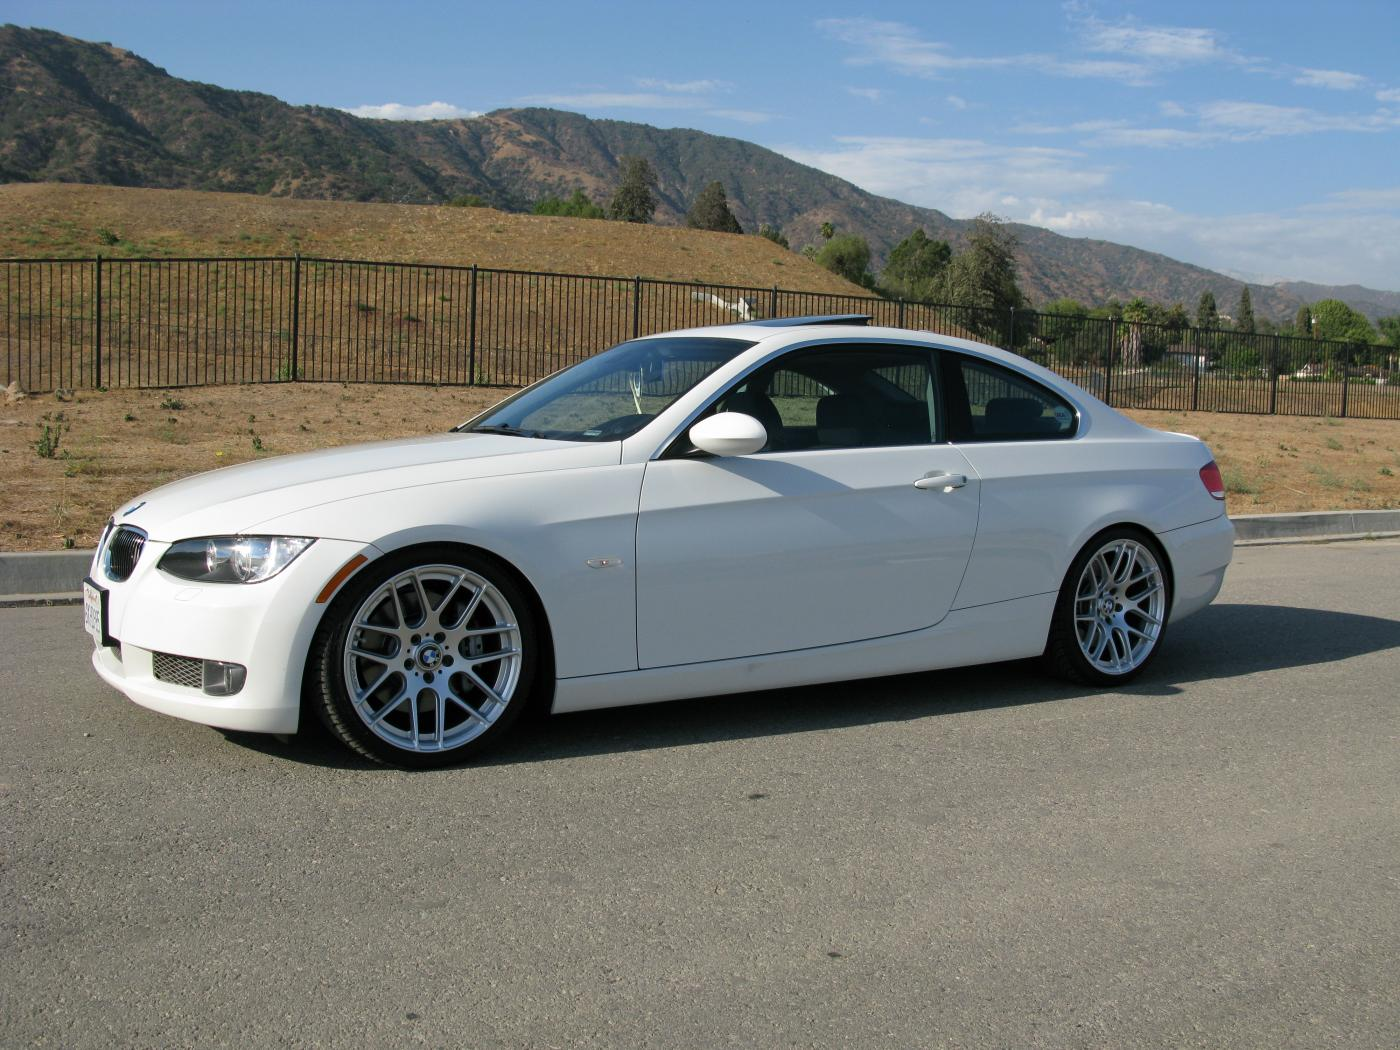 BMW 335I Coupe For Sale >> For Sale 07 335i Coupe Los Angeles Area Bmw 3 Series